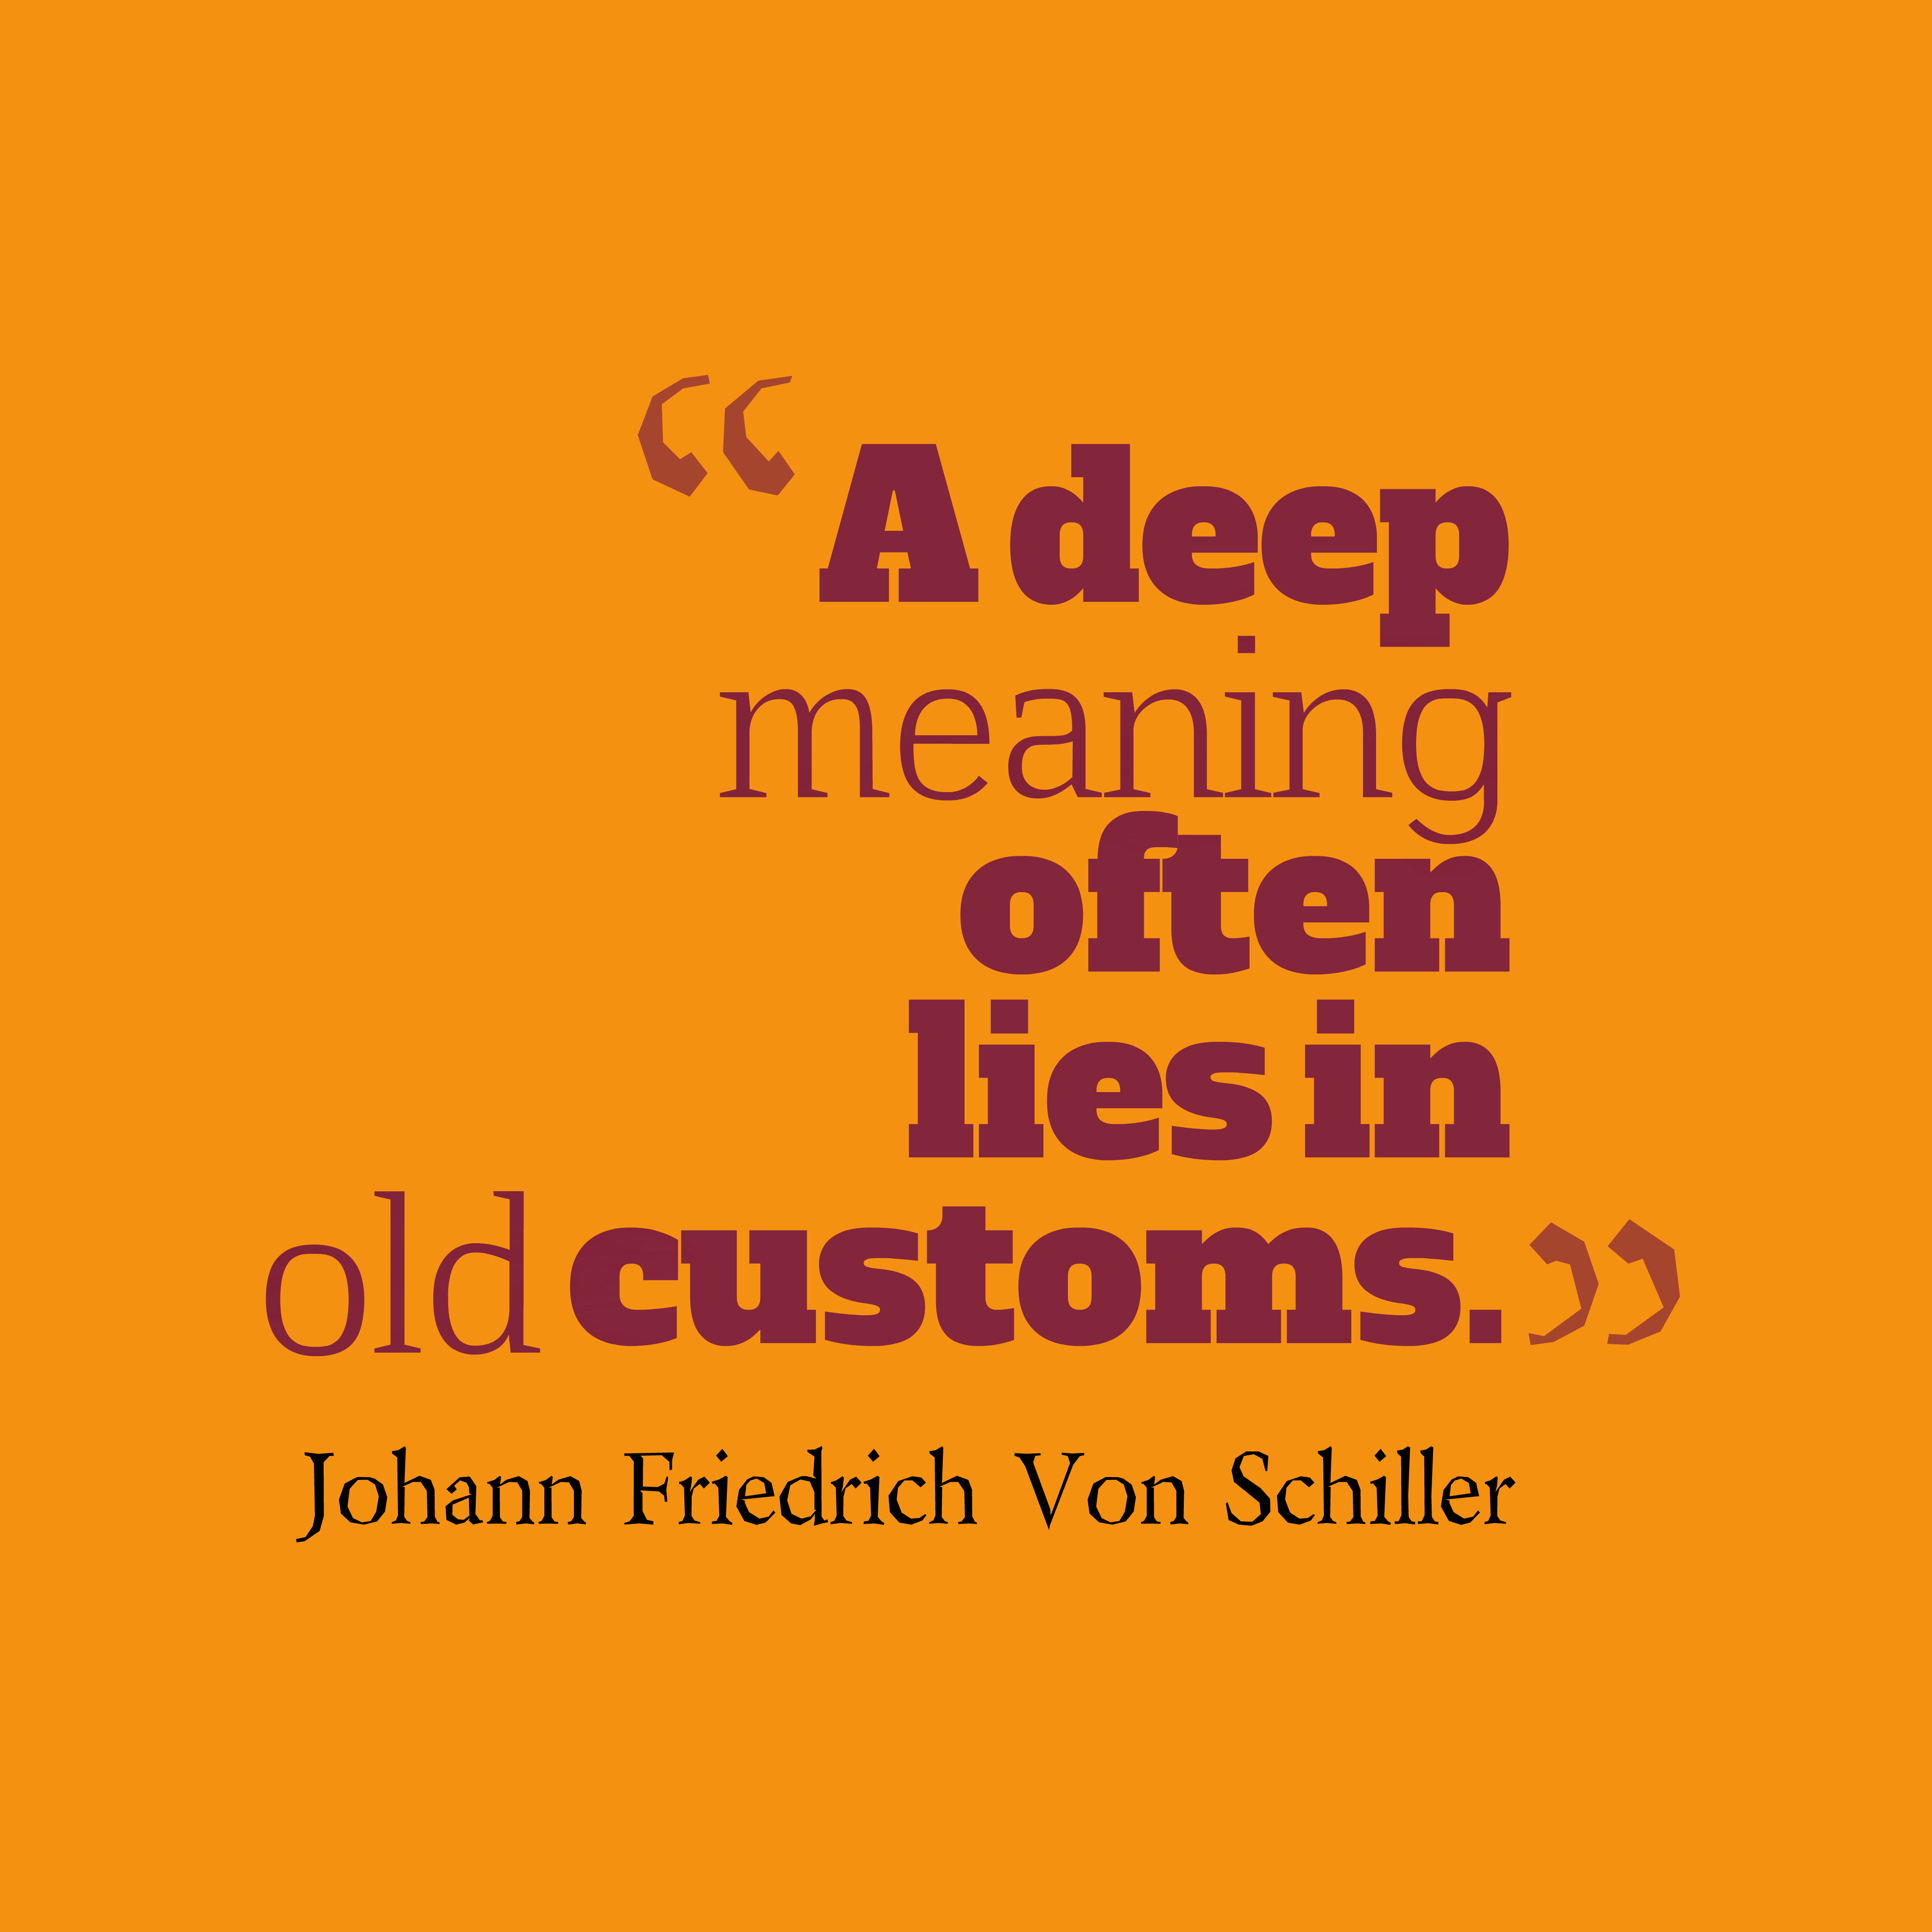 Quotes image of A deep meaning often lies in old customs.